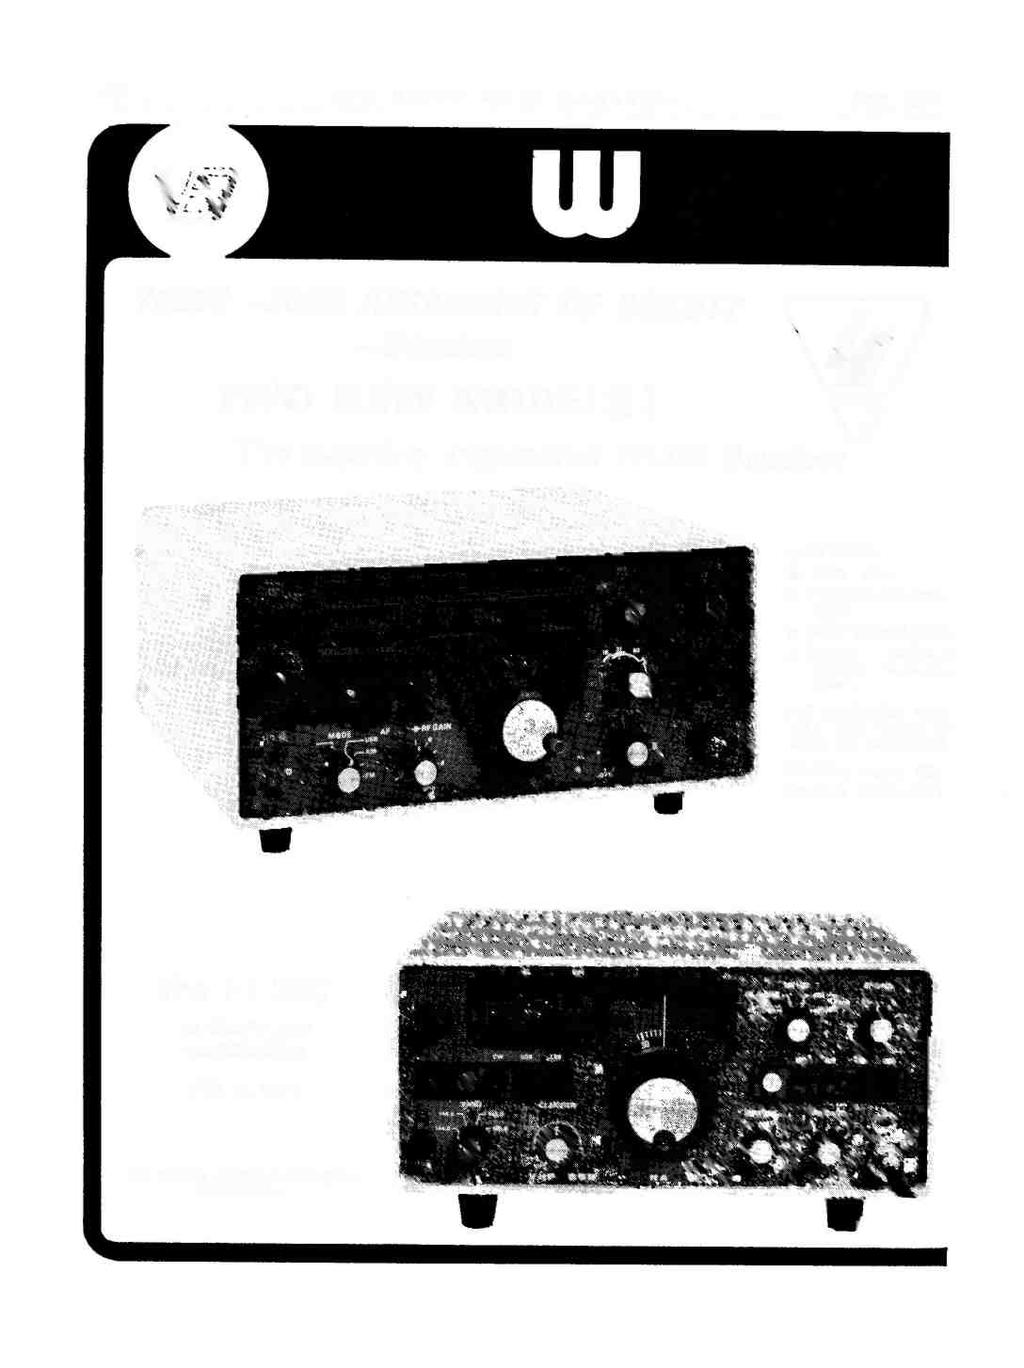 For The Radio Amateur And Pdf Integral Audio Mini Cooper Amplfier Speaker Wiring Harness R55 R56 R57 232 Short Wave Magazine July 1974 Yaesu Your Assurance Of Quality